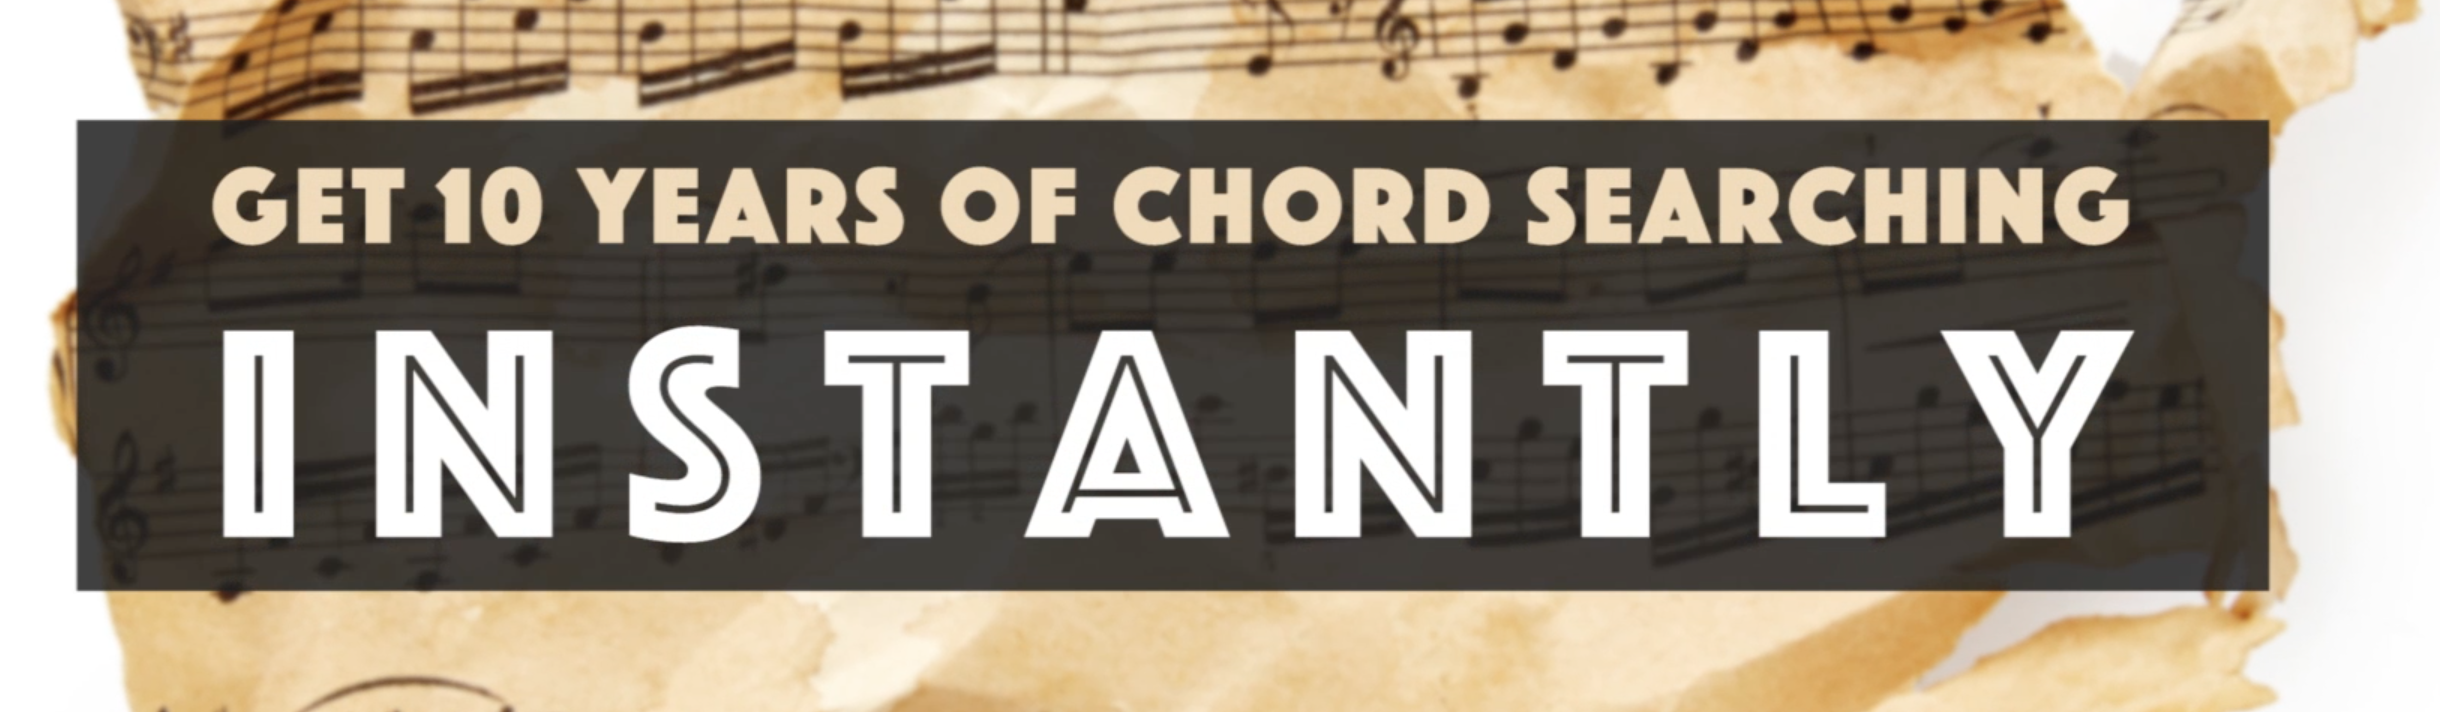 get 10 years chord searching instantly